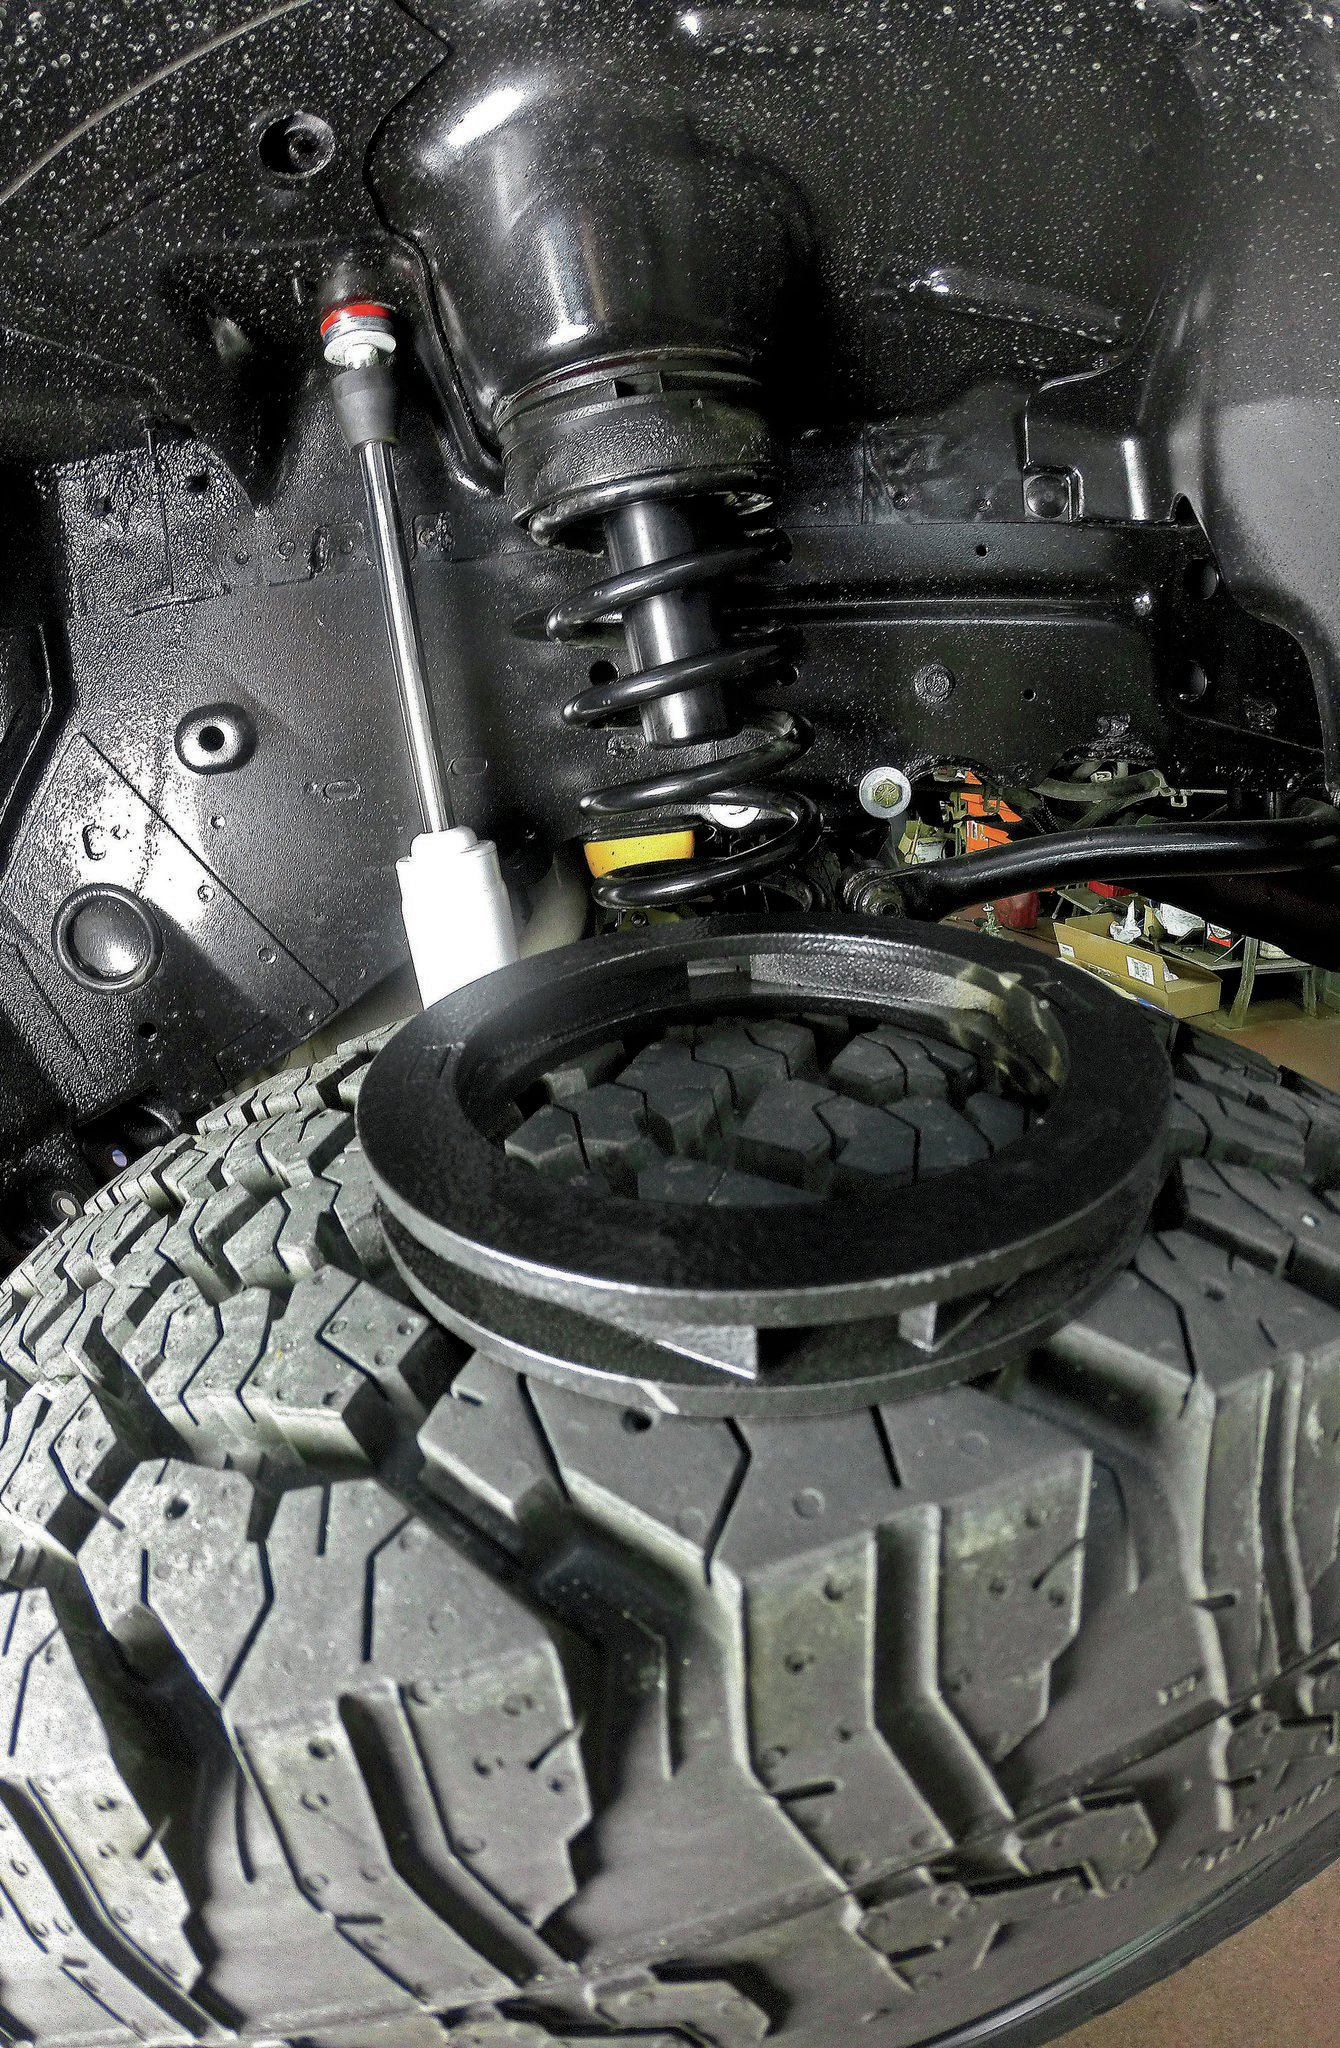 With a considerable amount of additional weight now hanging off the front end of our WJ, we compensated for spring-sag with a pair of Rough Country 3⁄4-inch coil spacers. Thanks to the impressive amount of axle droop that the IRO long-arm suspension offers, we were able to yank the coil springs out by hand and install the spacers in a matter of minutes. The Jeep still has a noticeable front-end rake, but the spacers did the trick for now; higher-rate coils may be in our future, however.